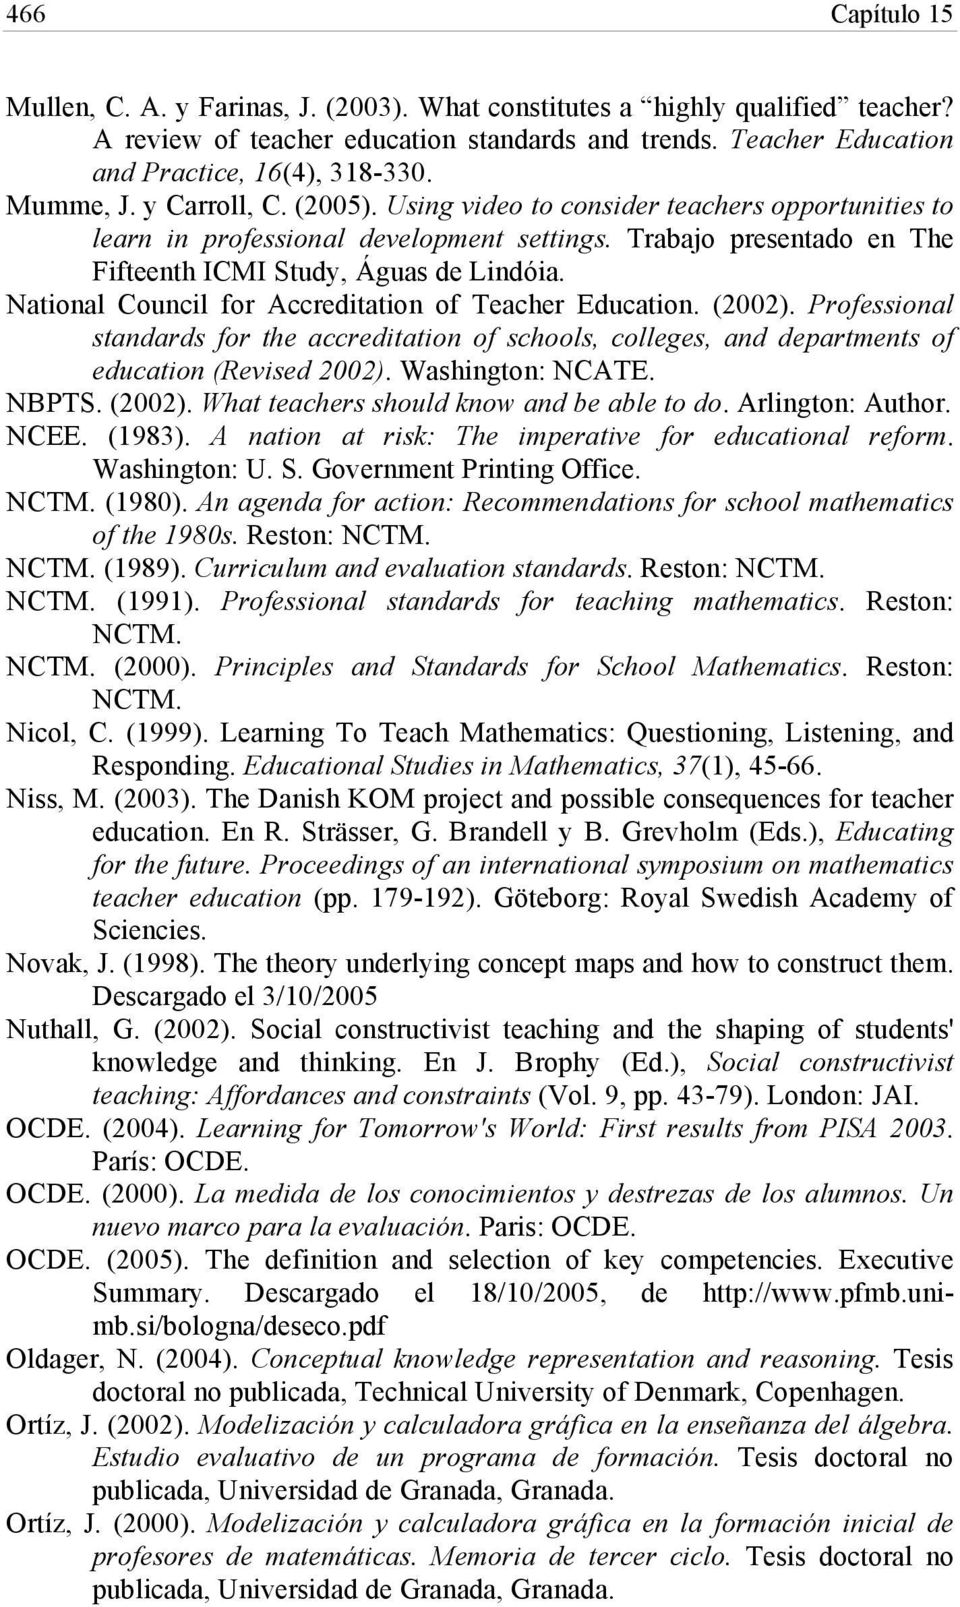 National Council for Accreditation of Teacher Education. (2002). Professional standards for the accreditation of schools, colleges, and departments of education (Revised 2002). Washington: NCATE.